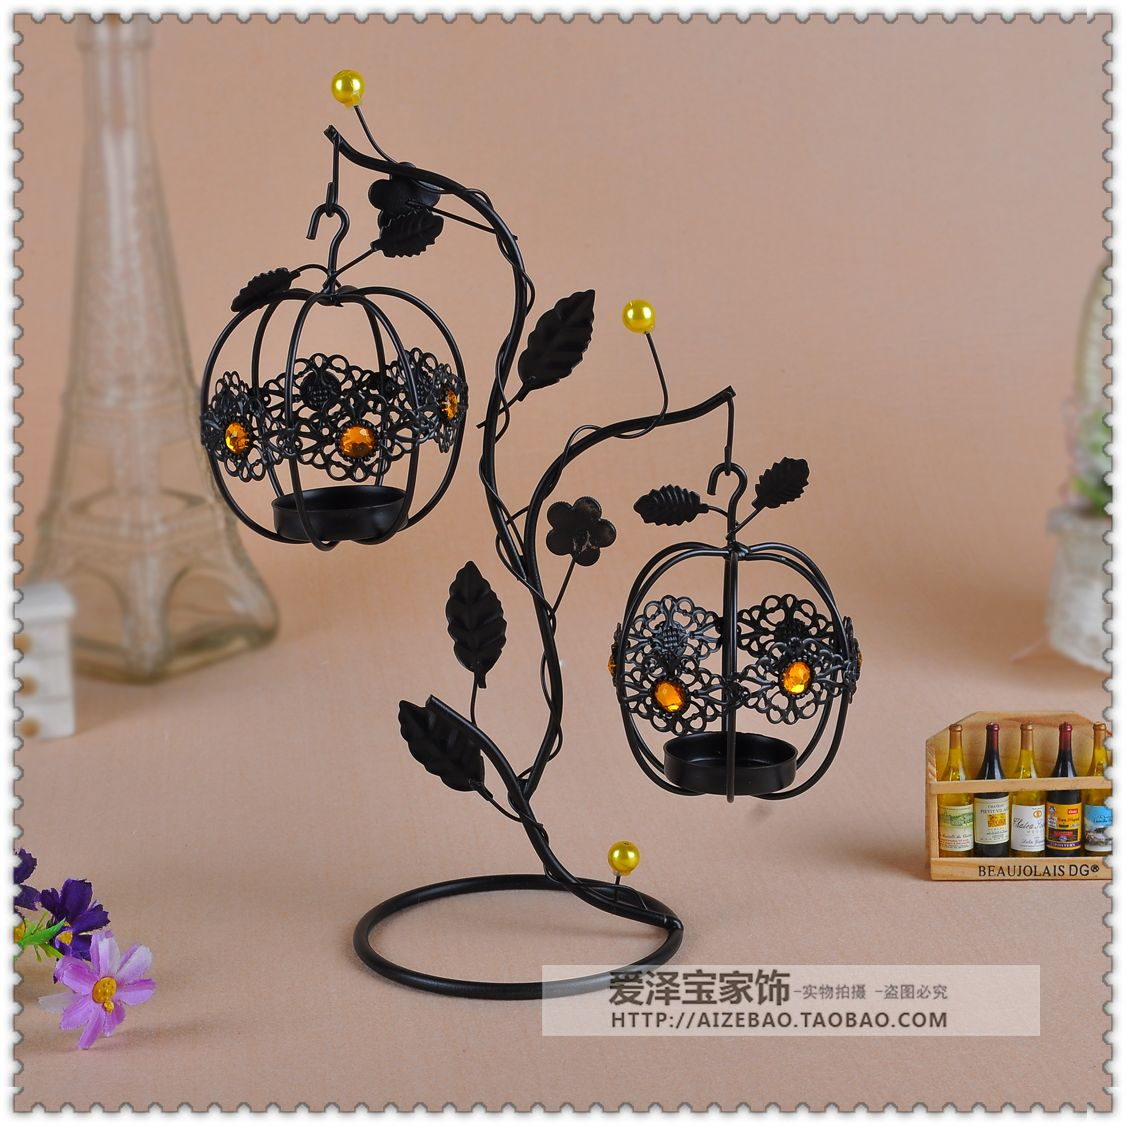 Fashion lantern tieyi mousse vintage hanging mousse at both ends new house decoration candle 1